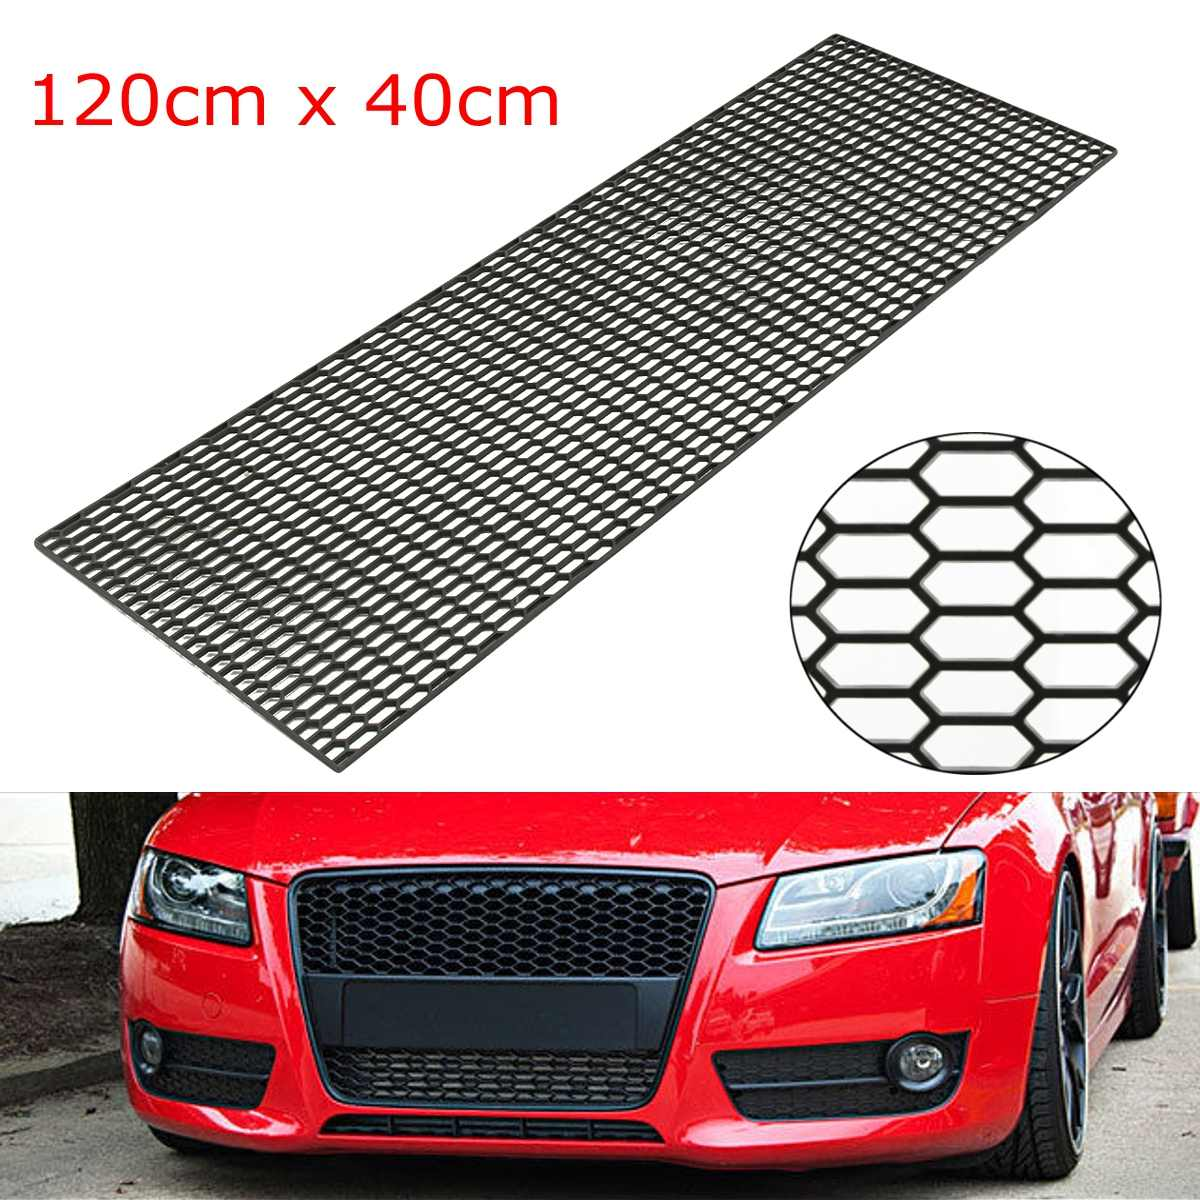 120X40cm Universal Car Styling Air Intake Racing A Nido D'ape Maglia Griglia Paraurti Spoiler Hood Vent Griglie radiatore sportive